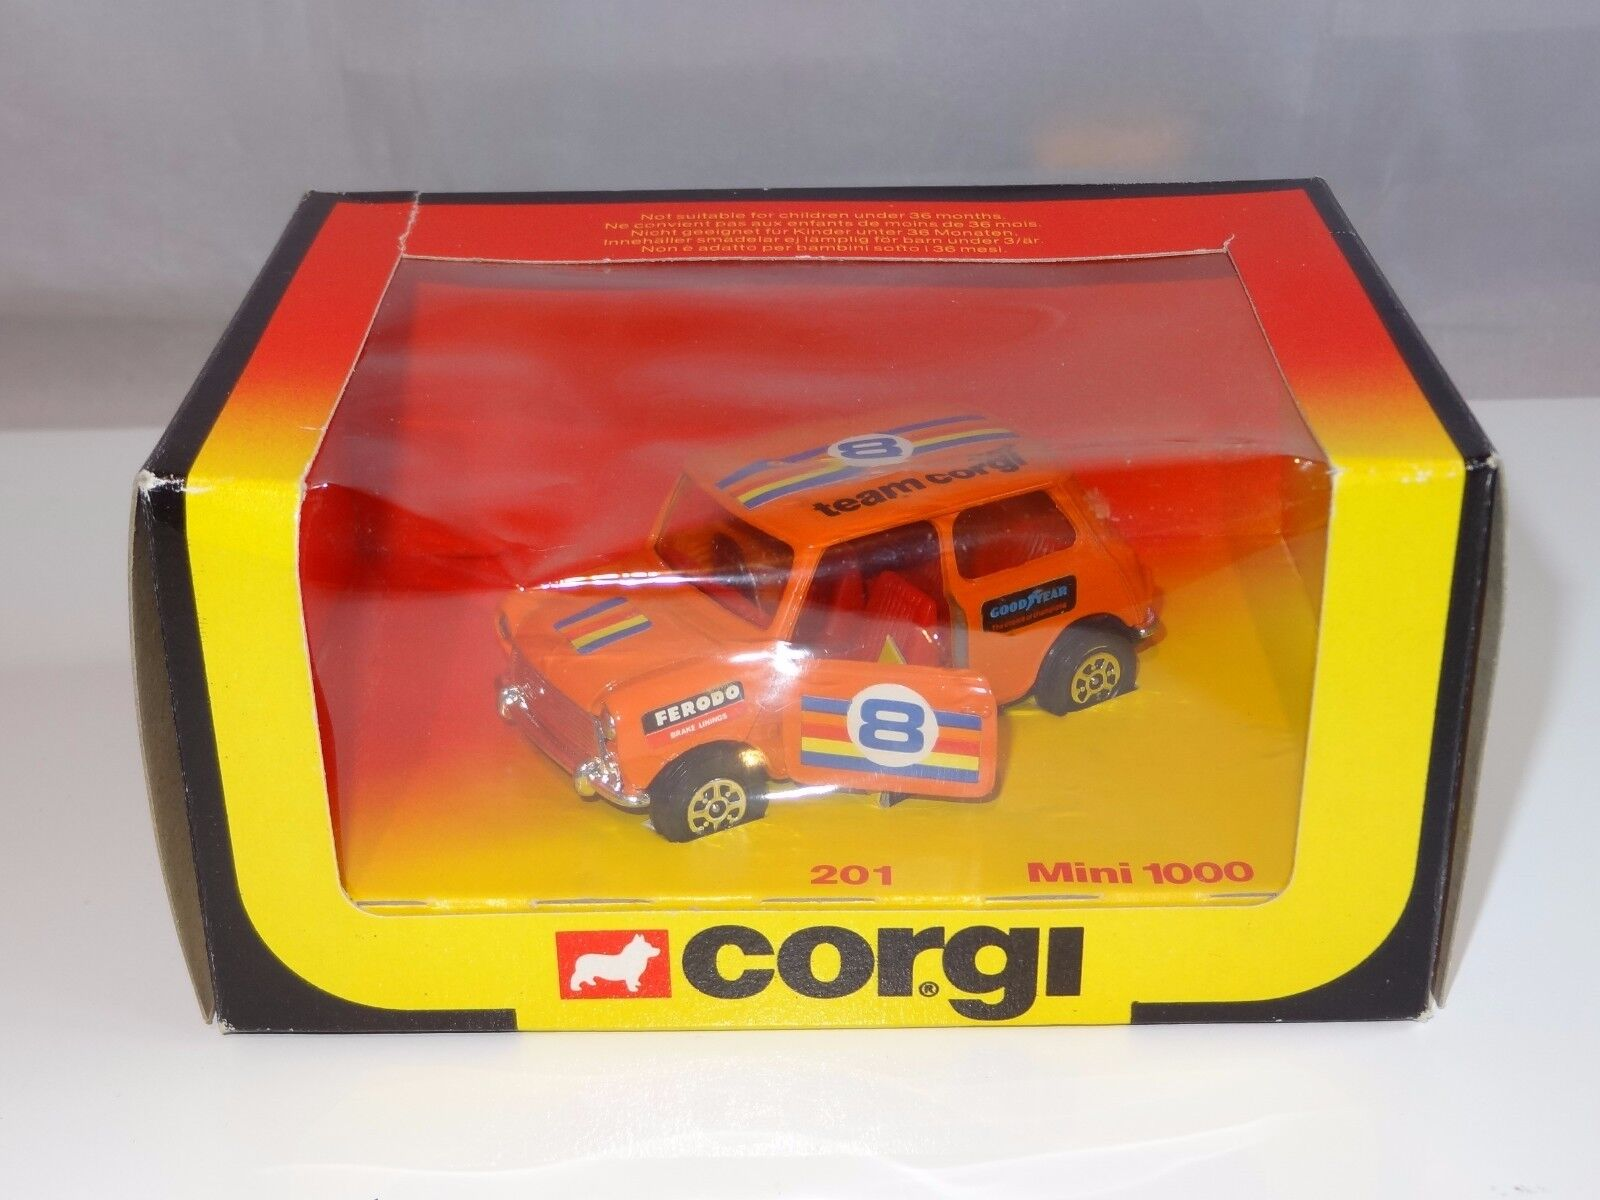 Corgi MINI 1000 - ultra rare orange colour - 201